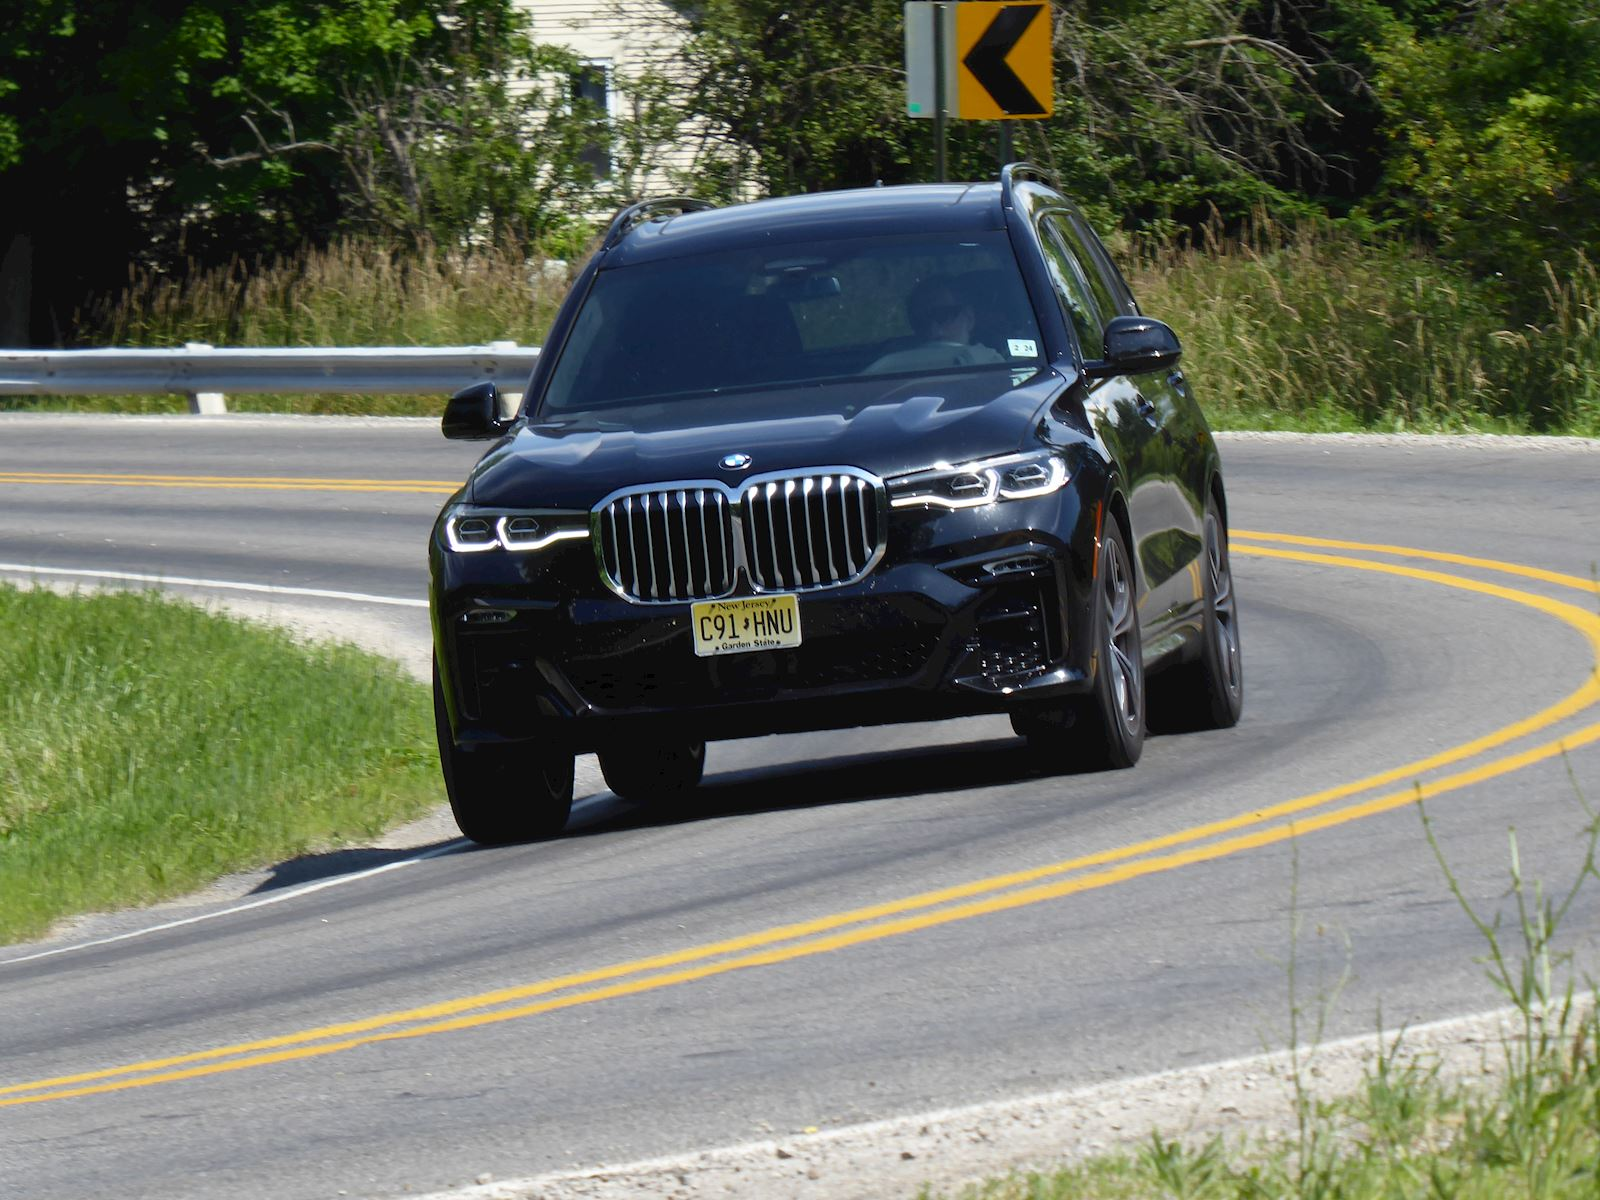 2019 BMW X7 driving on the road photo